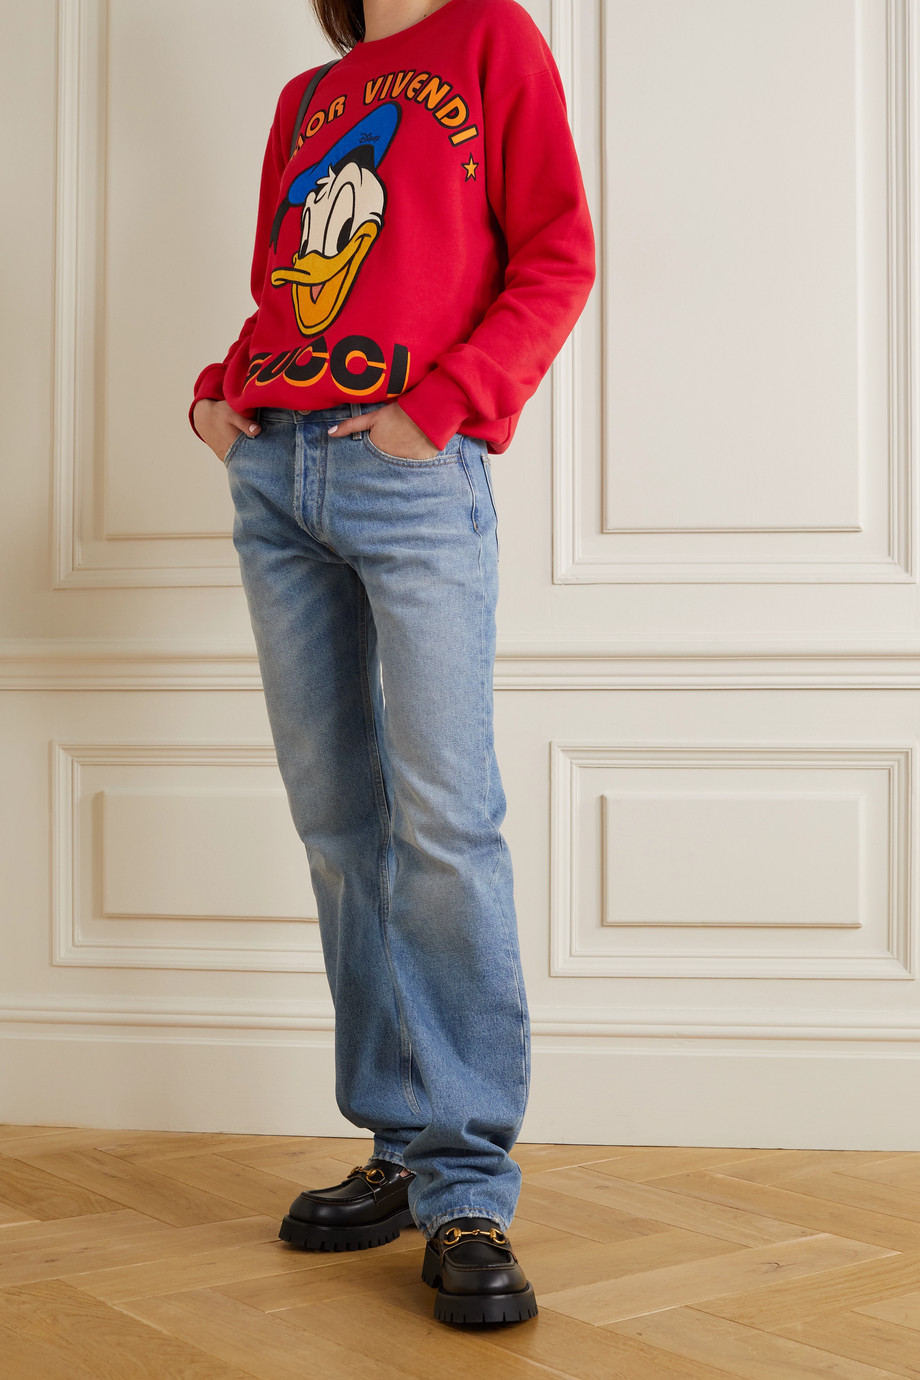 GUCCI + NET SUSTAIN + Disney appliquéd printed organic cotton-jersey sweatshirt